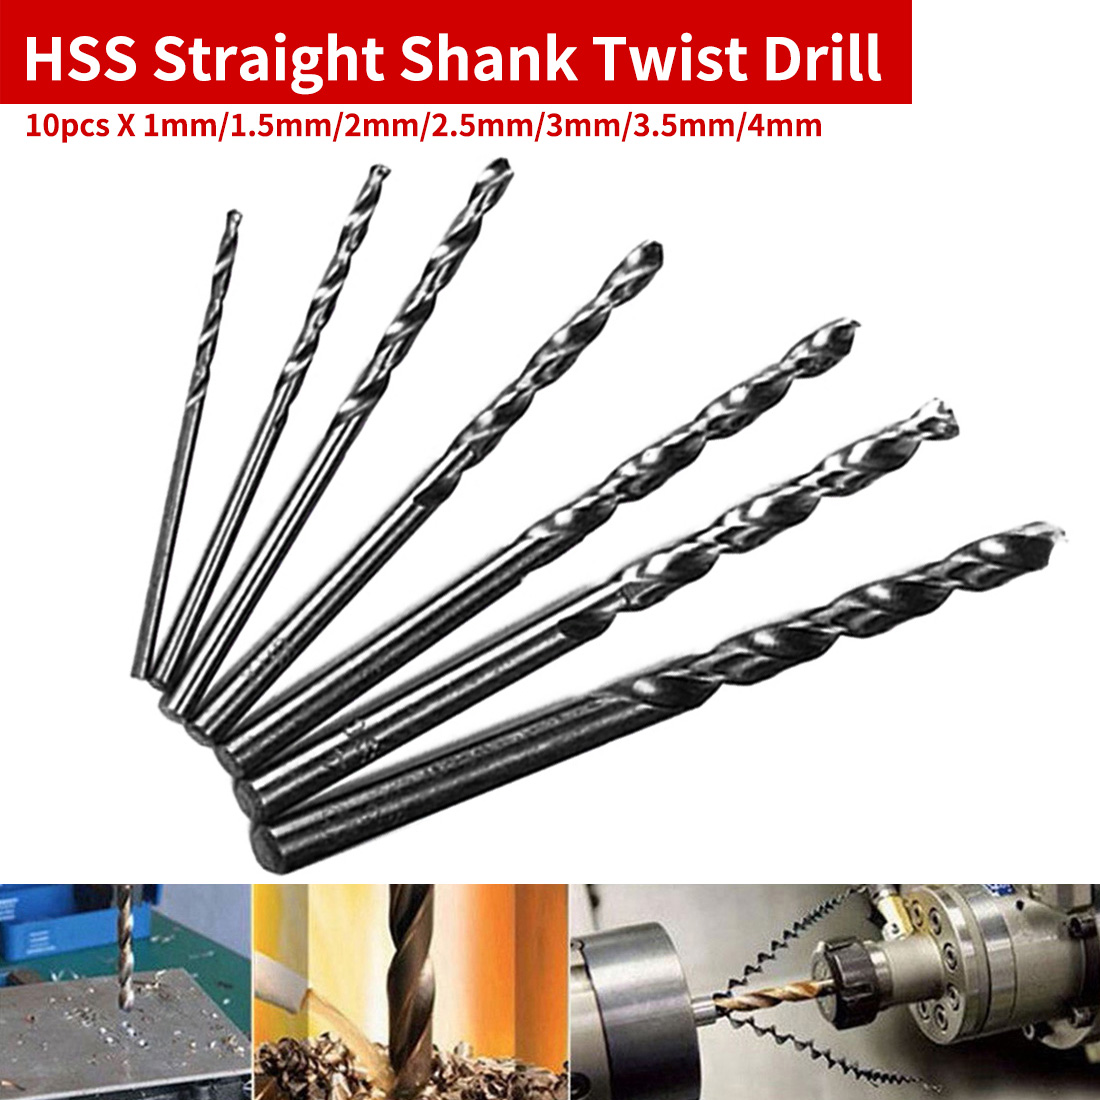 10pcs HSS Mini Drill Twist Drill Bits Set Straight Shank For PCB/Thin Aluminum/Iron Sheet 1mm/1.5mm/2mm/2.5mm/3mm/3.5mm/4mm